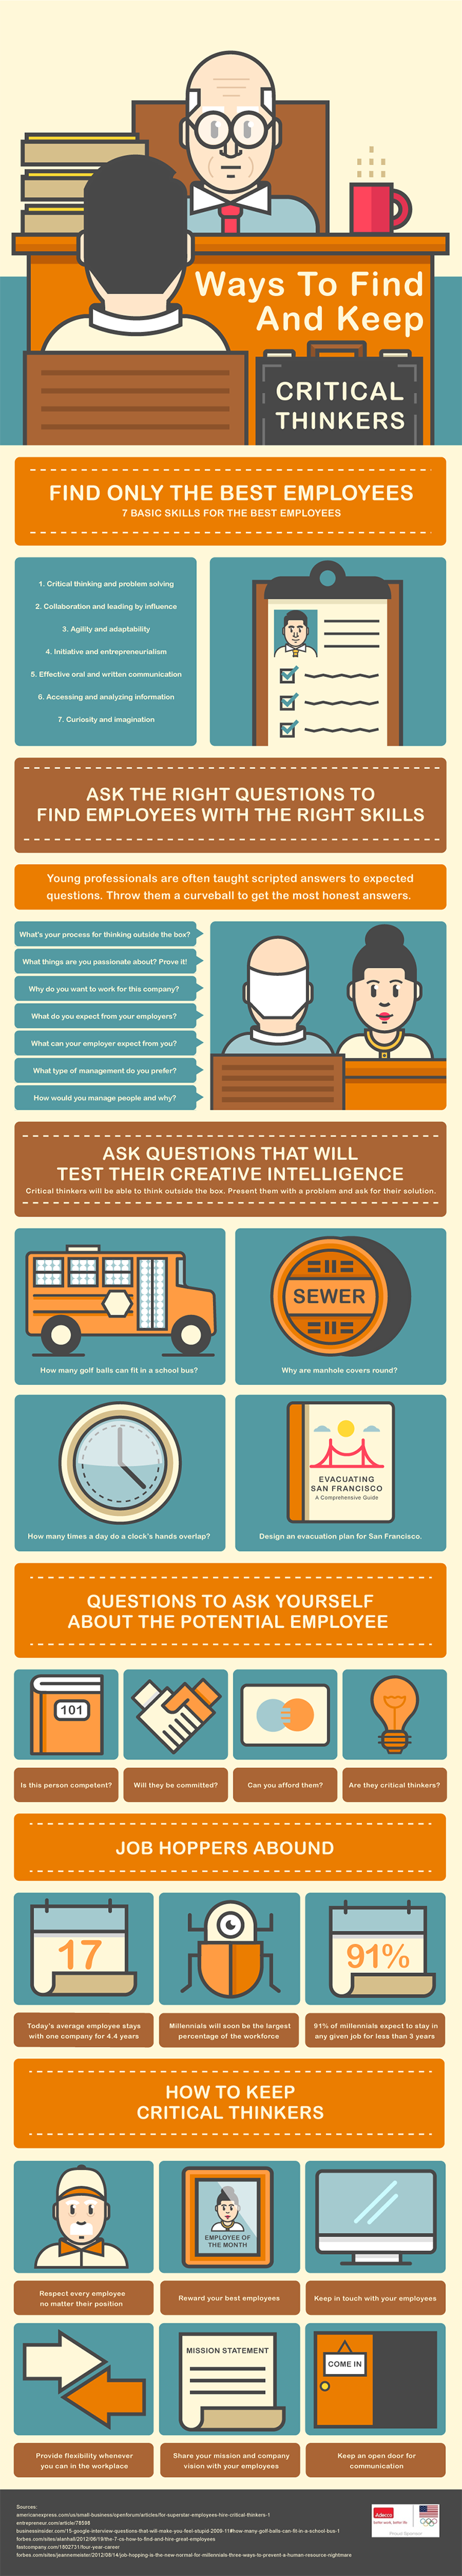 Ways To Find And Keep Critical Thinkers